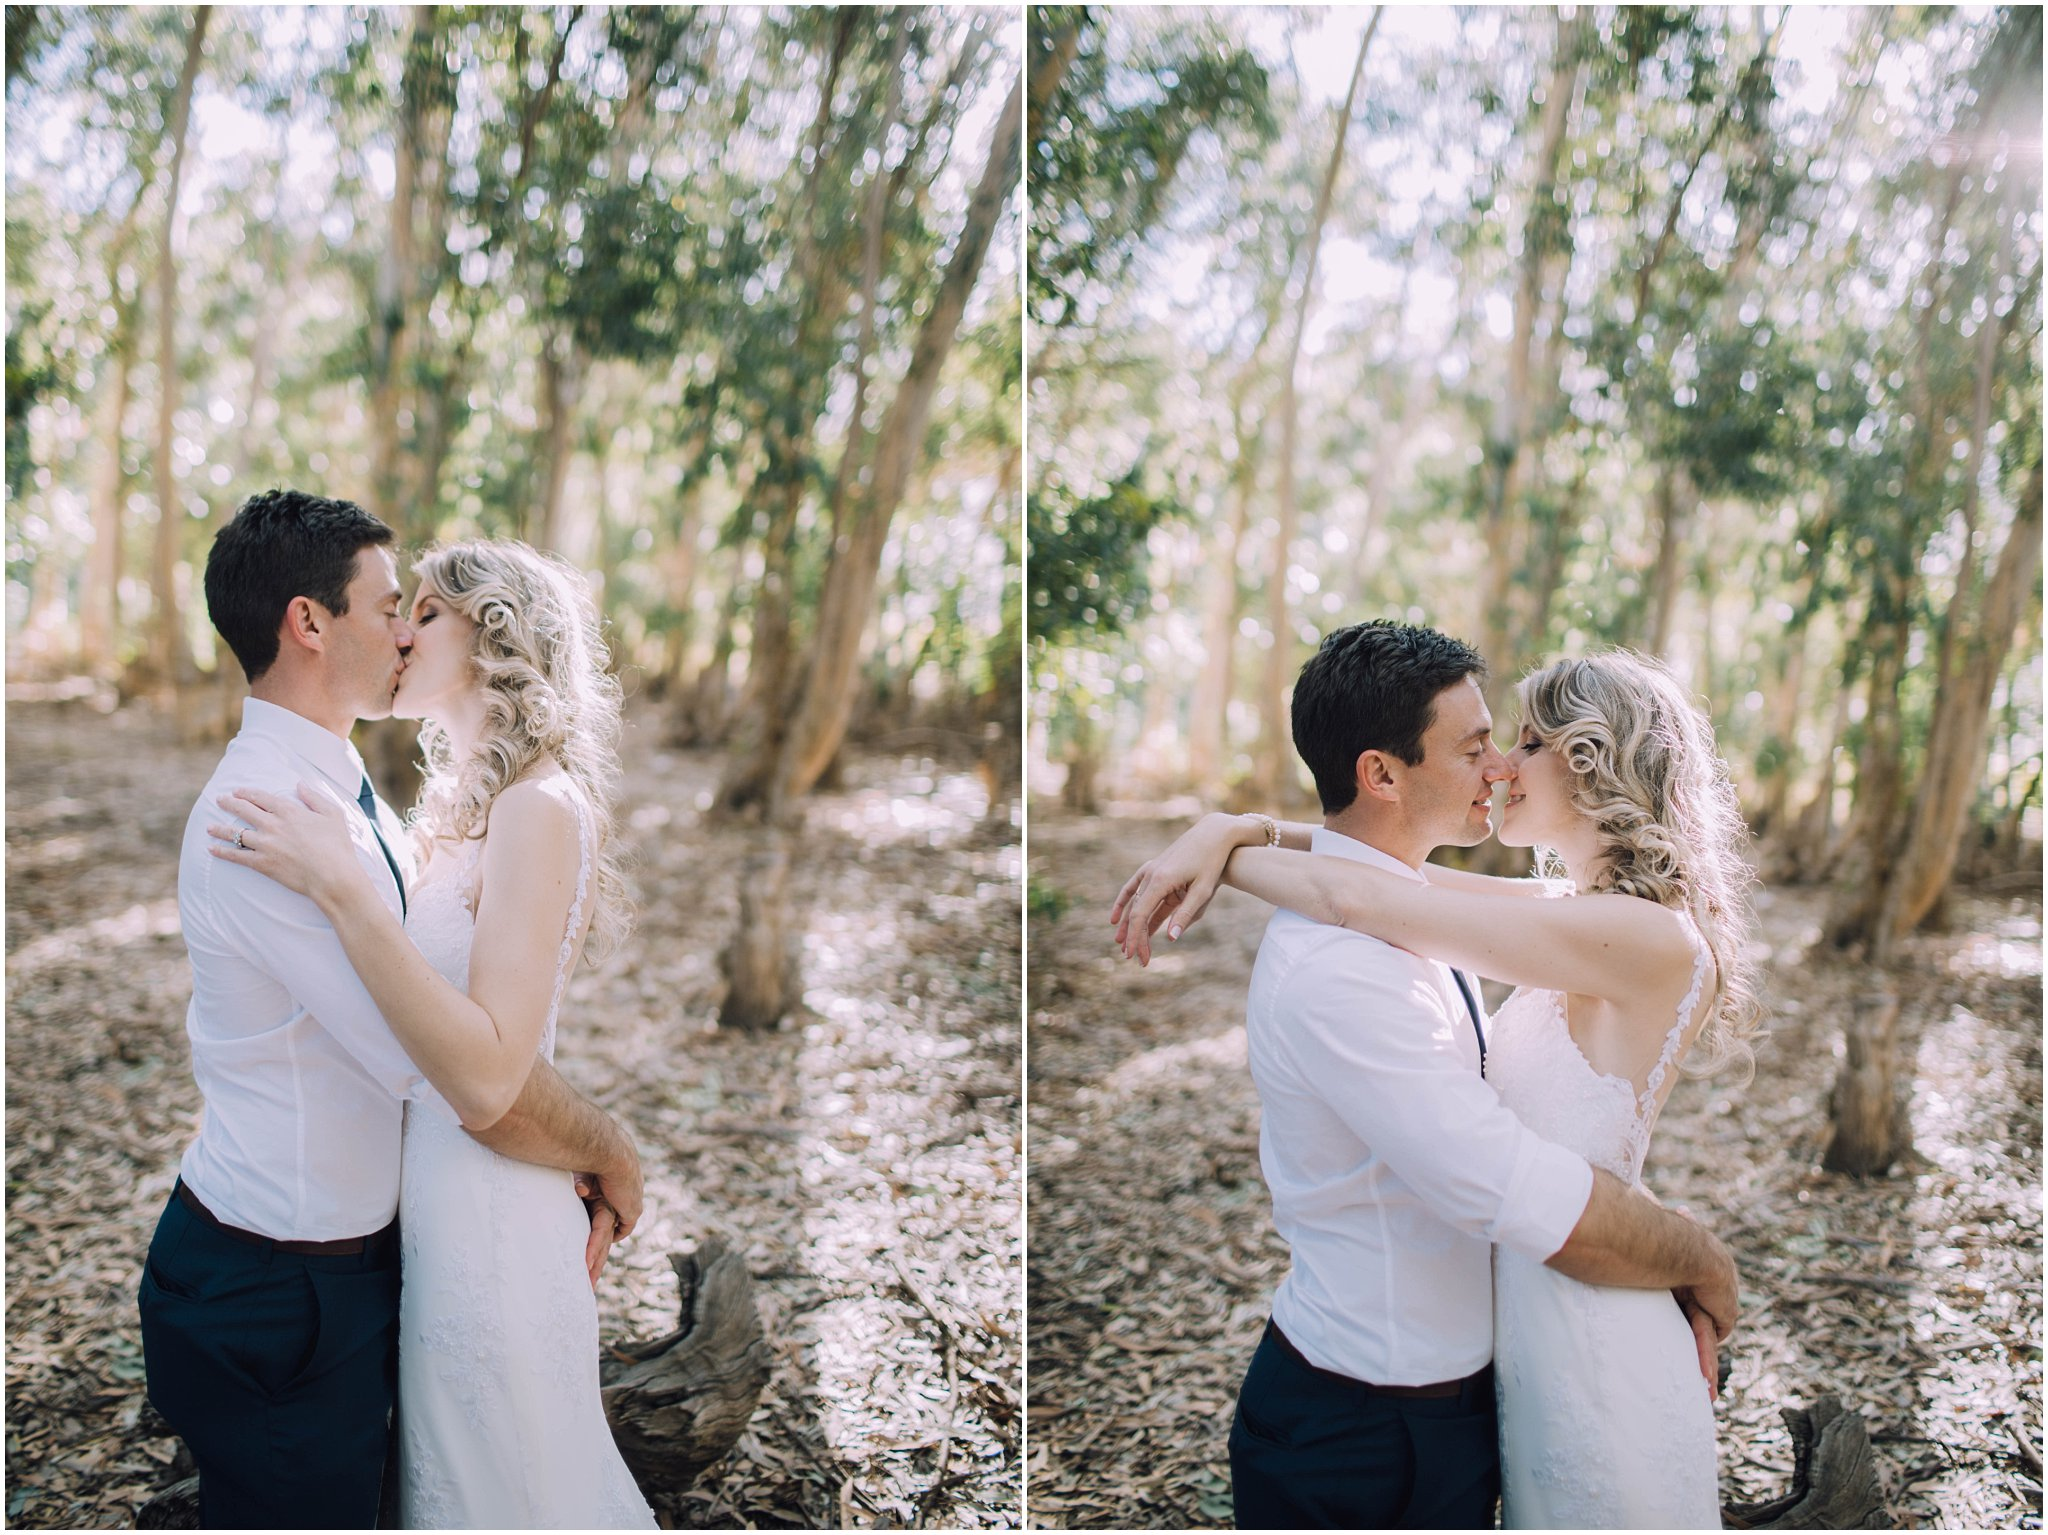 Ronel Kruger Cape Town Wedding and Lifestyle Photographer_2866.jpg